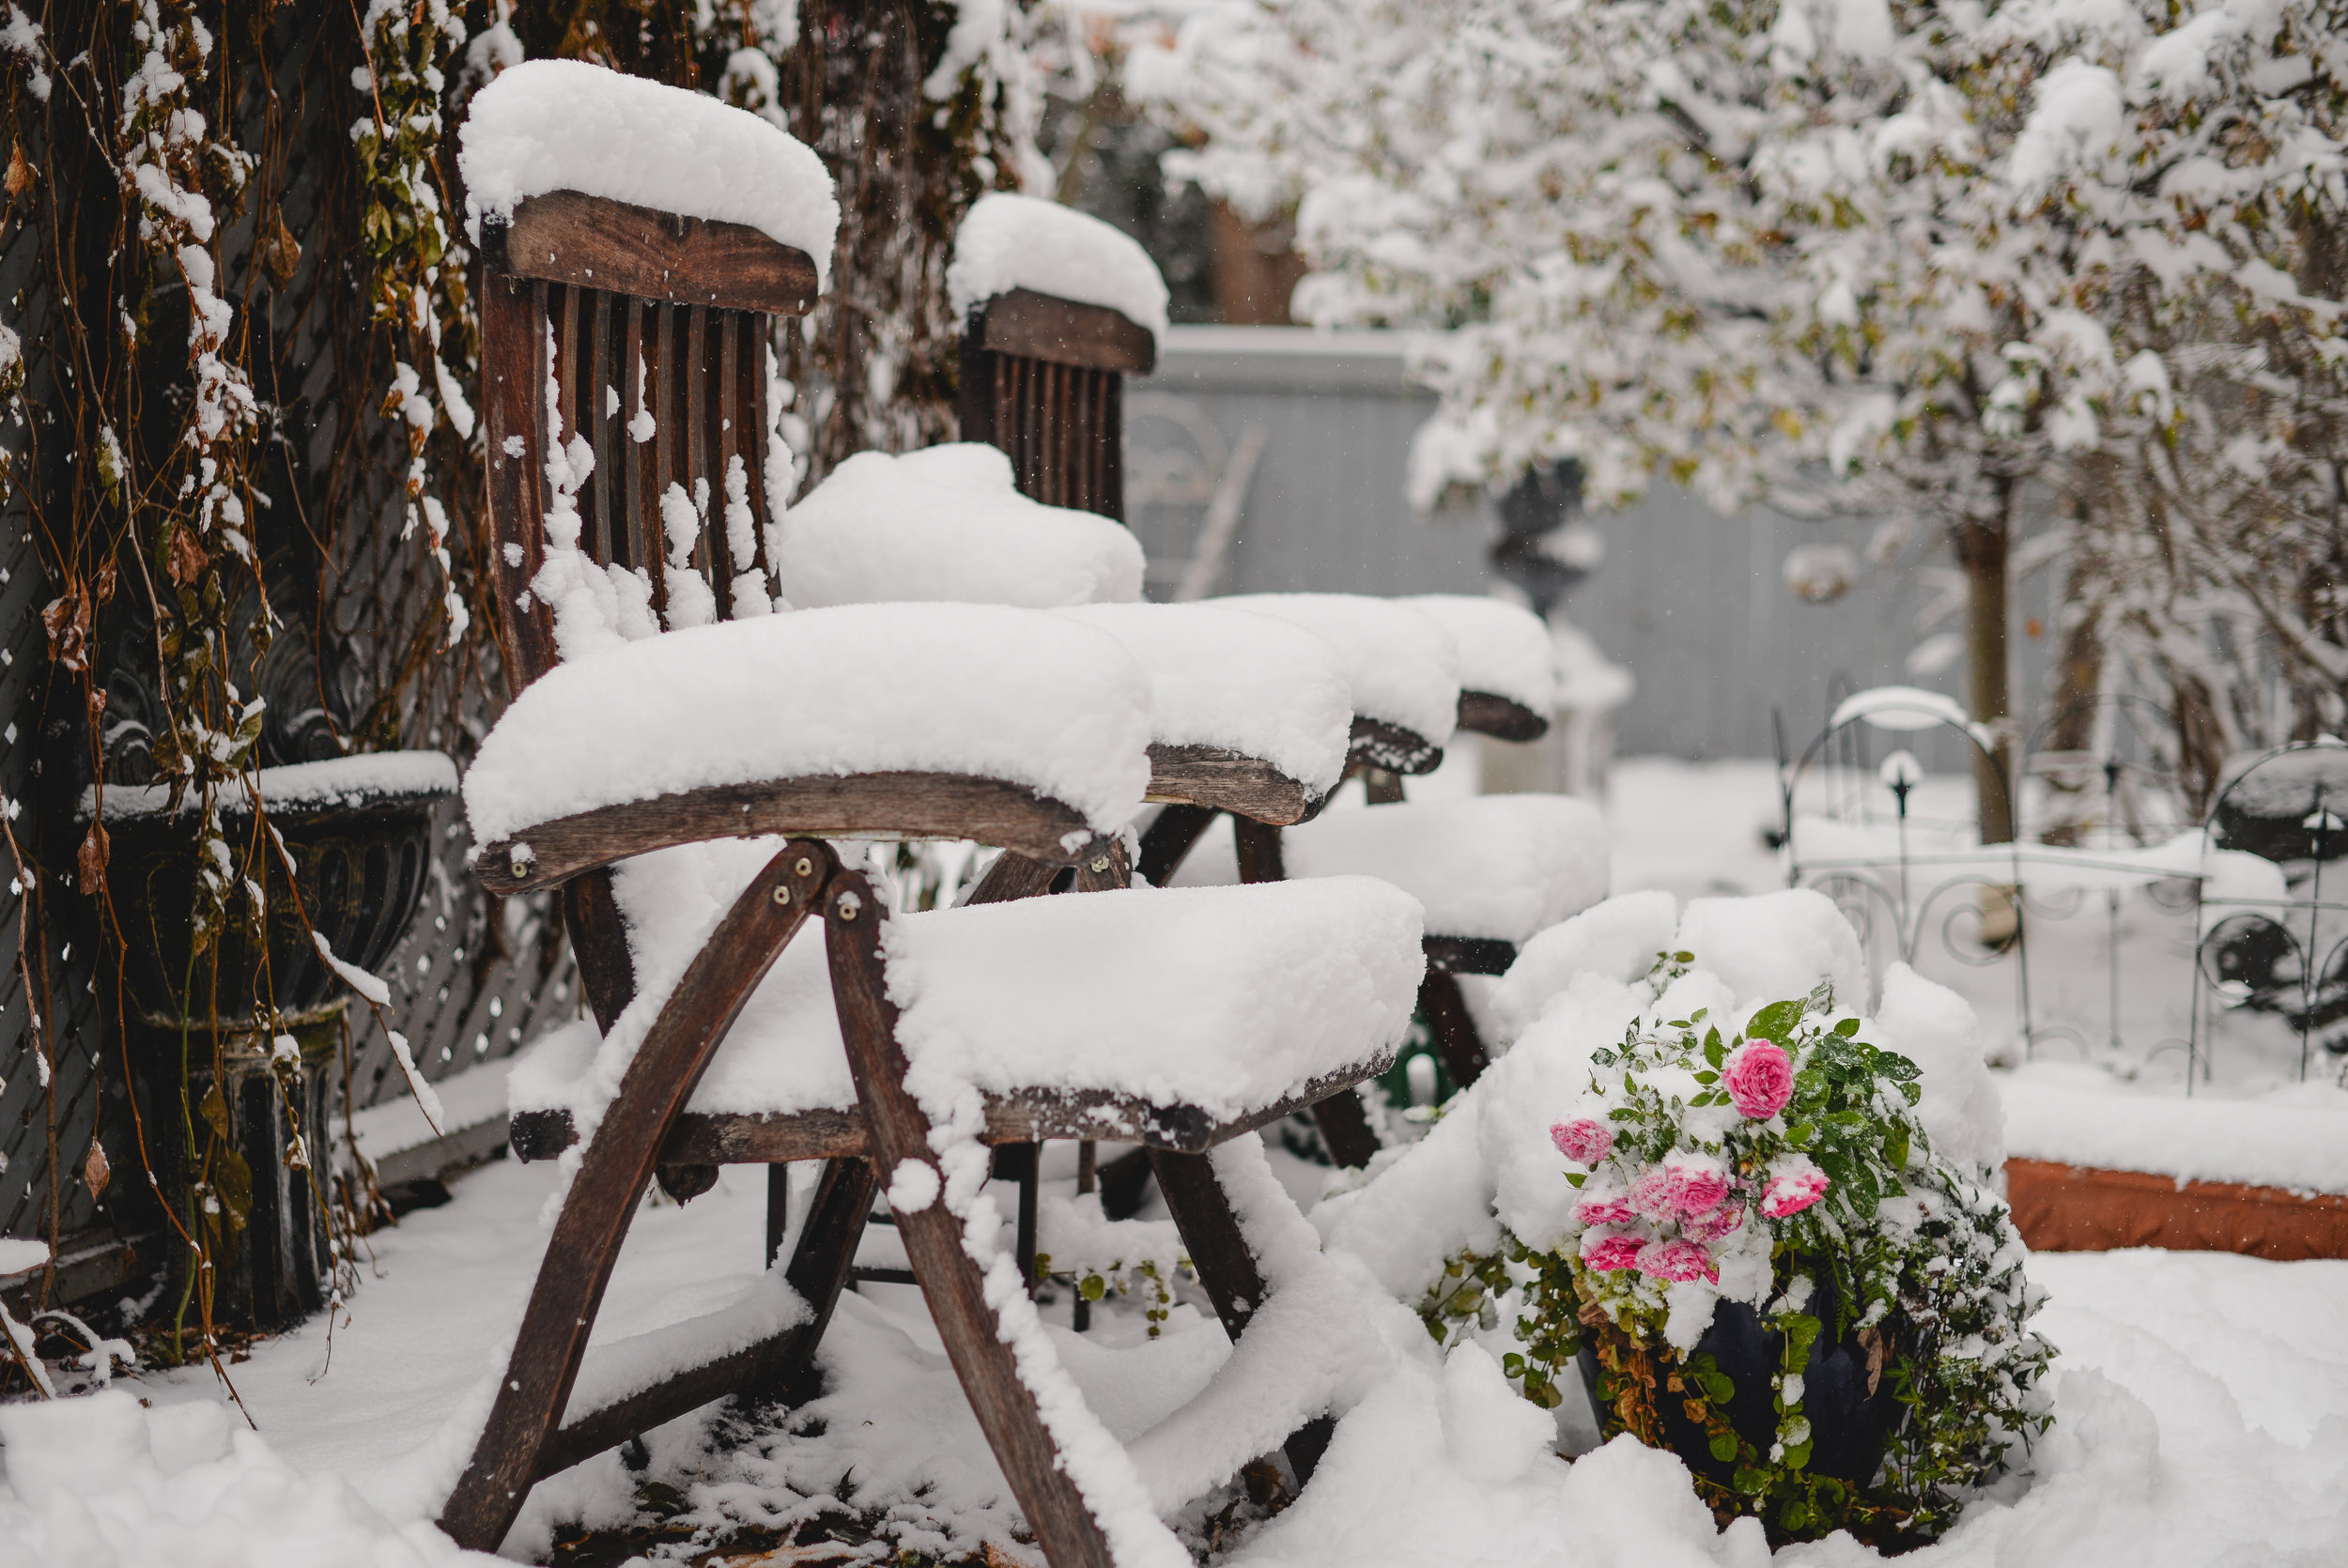 Snow on lawn chairs